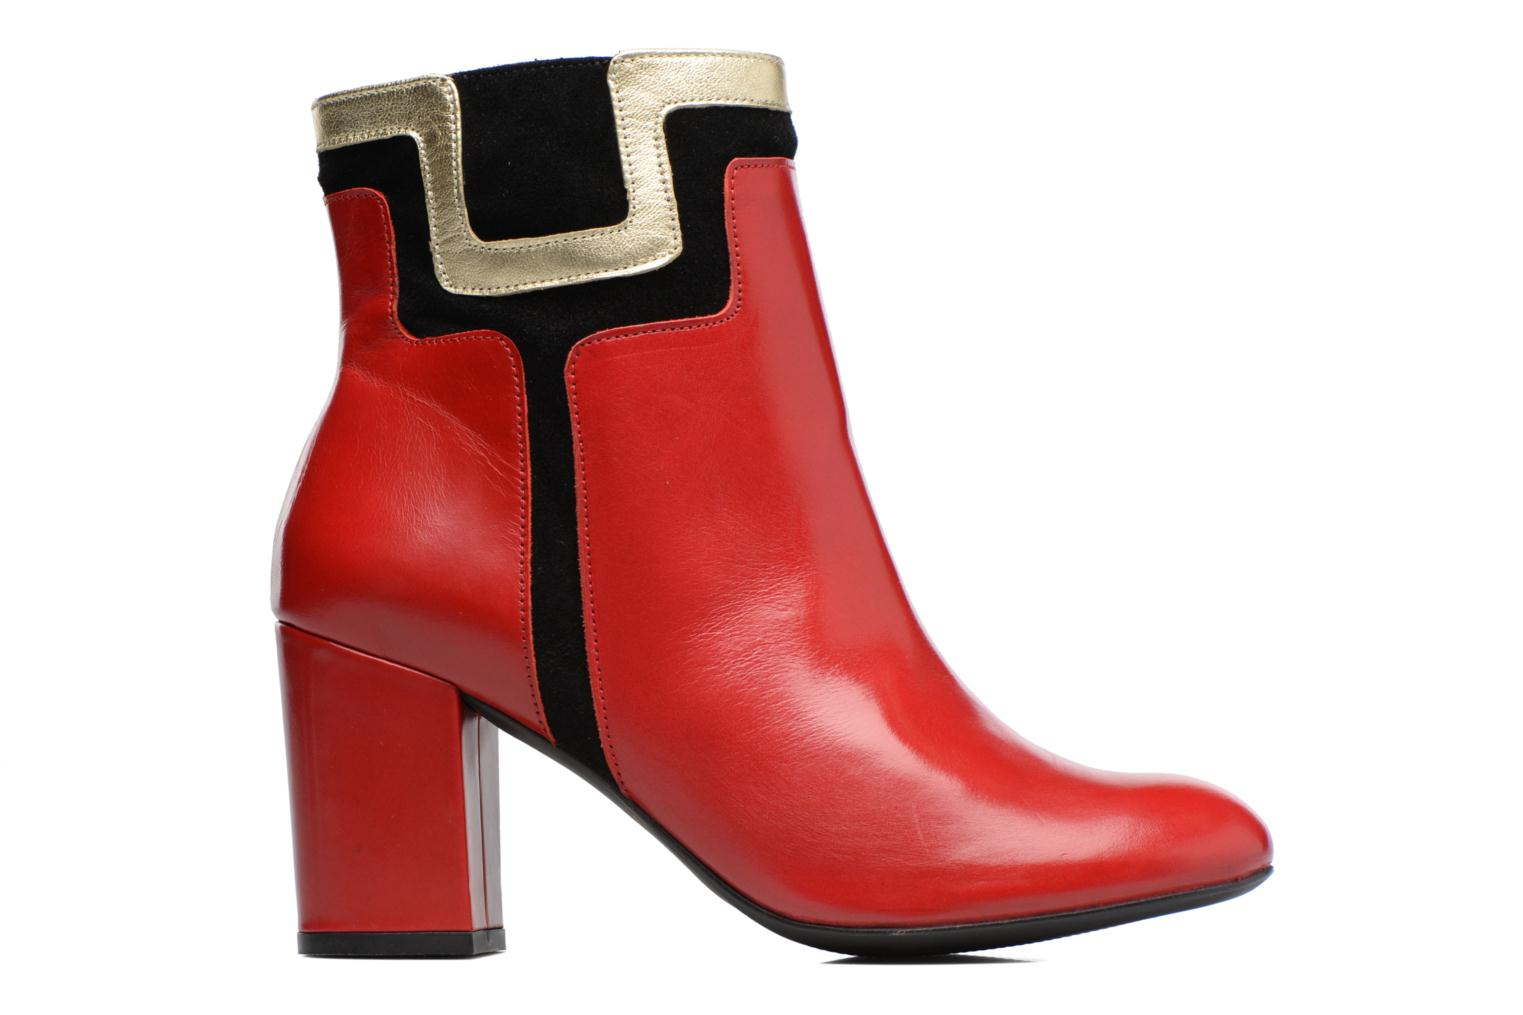 Boots Camp #10 cuir lisse rouge